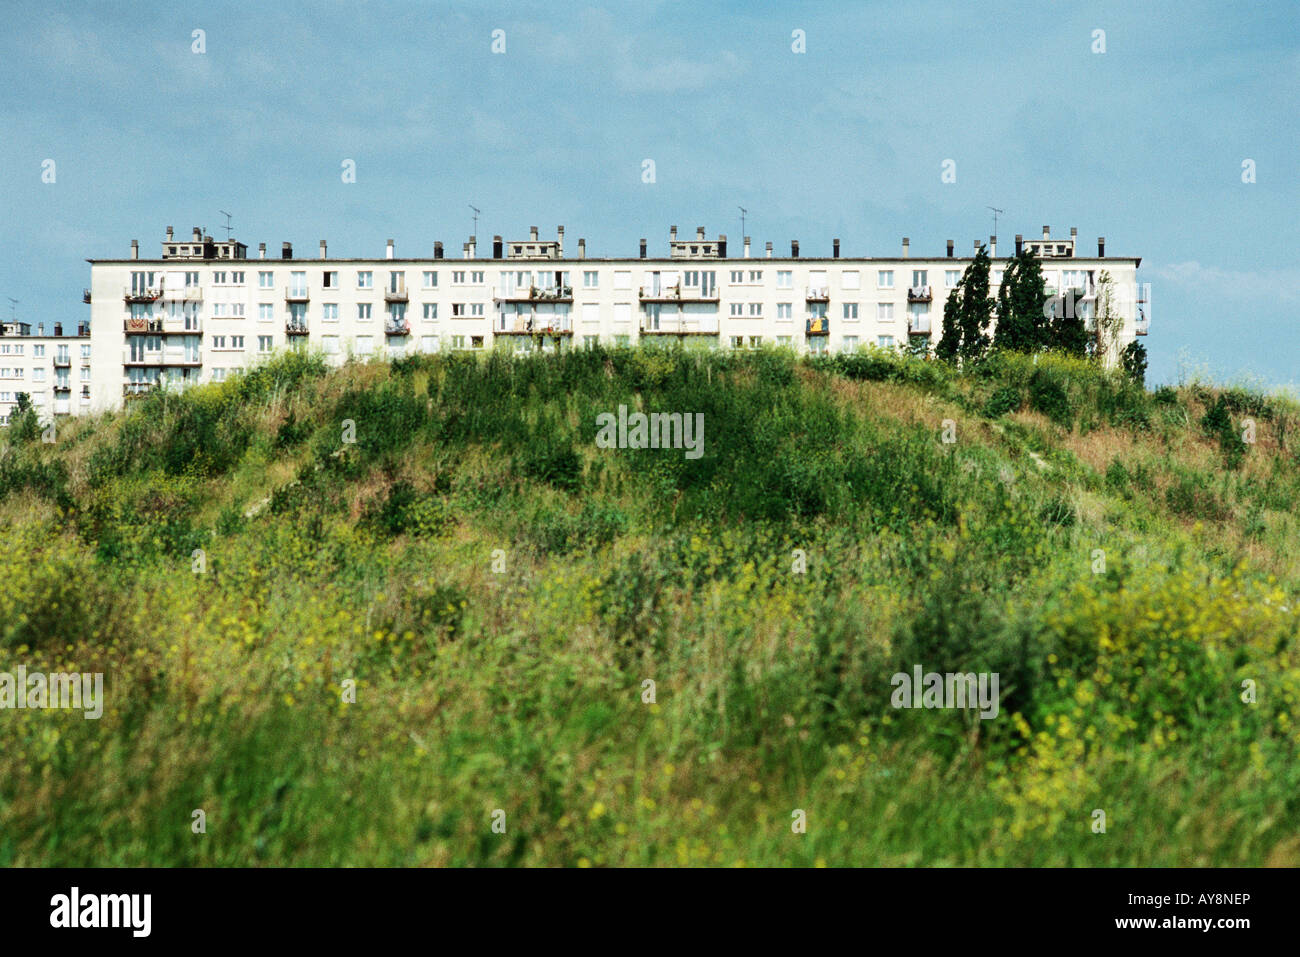 Housing project on hill, Ile-de-France, France Stock Photo